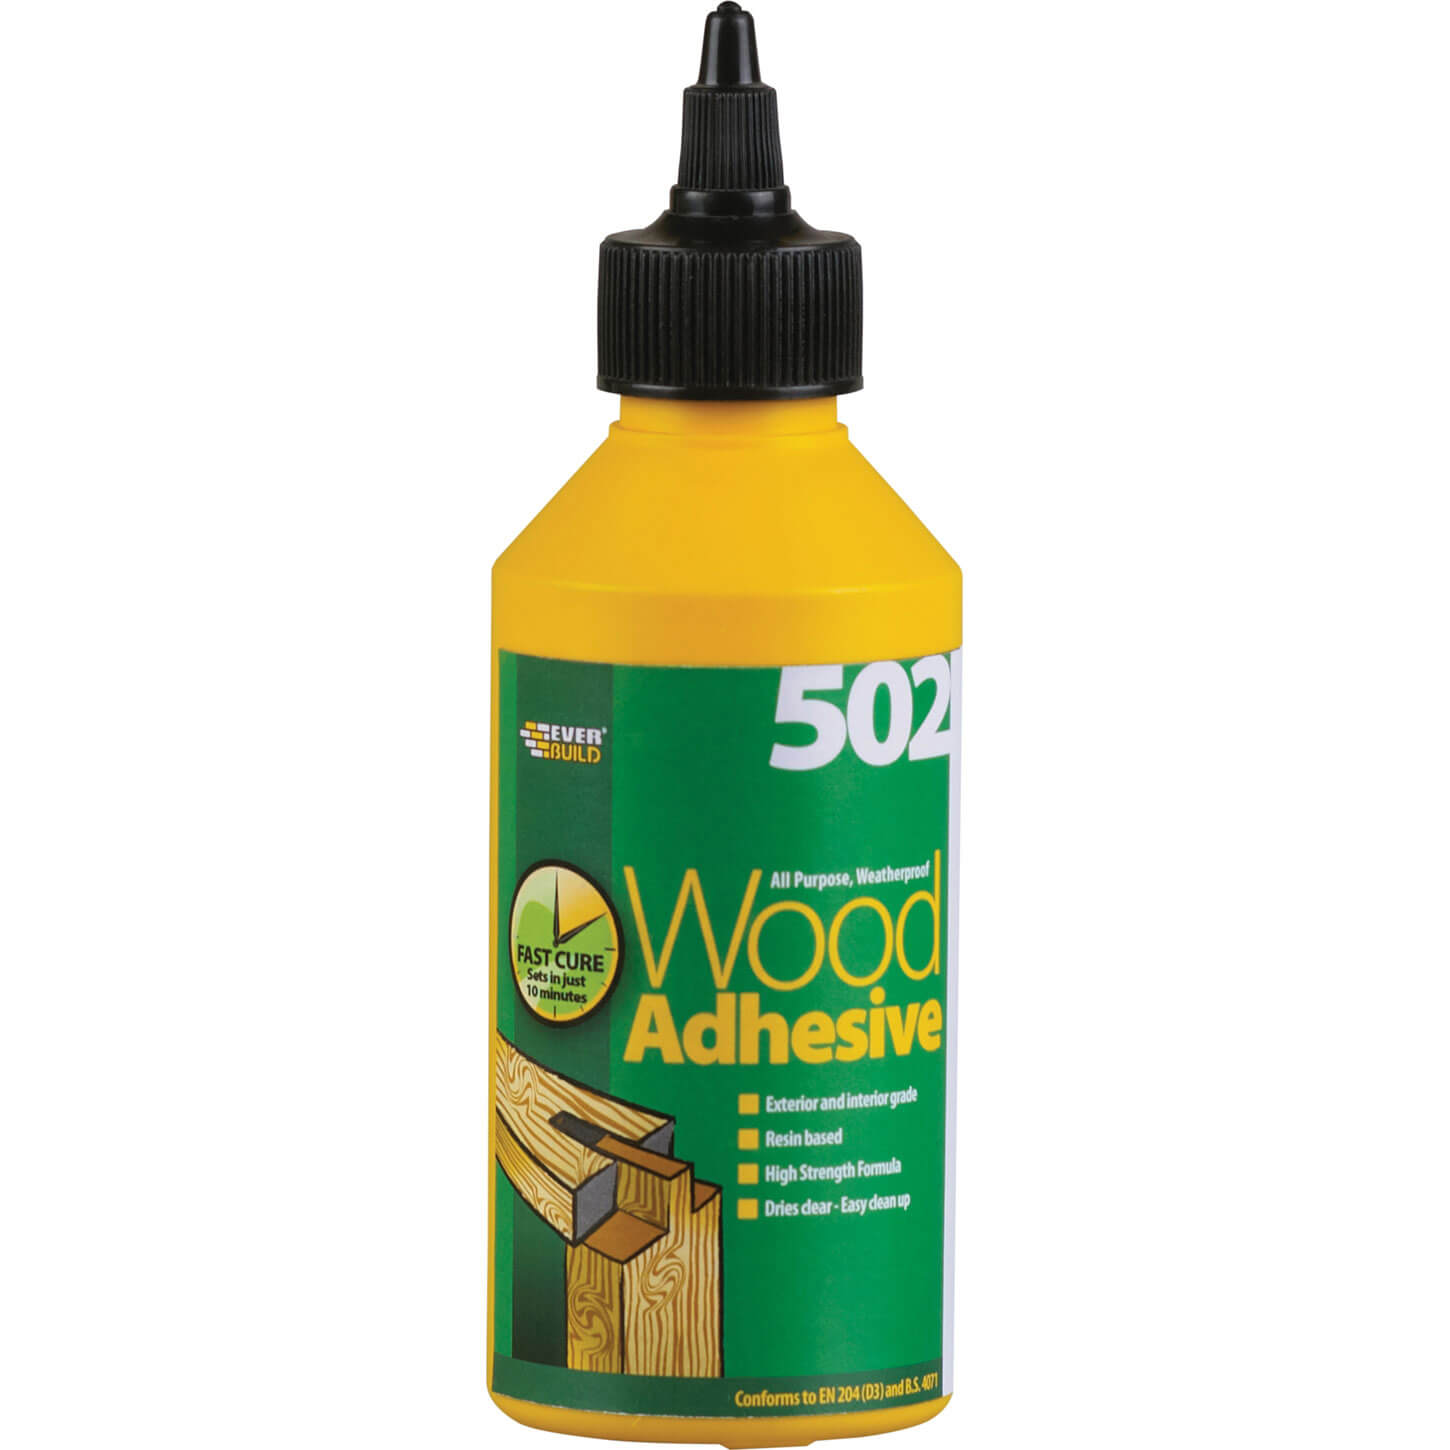 Tooled Up/Sealants & Adhesives/Adhesives/Everbuild 502 All Purpose Weatherproof Wood Adhesive 75ml